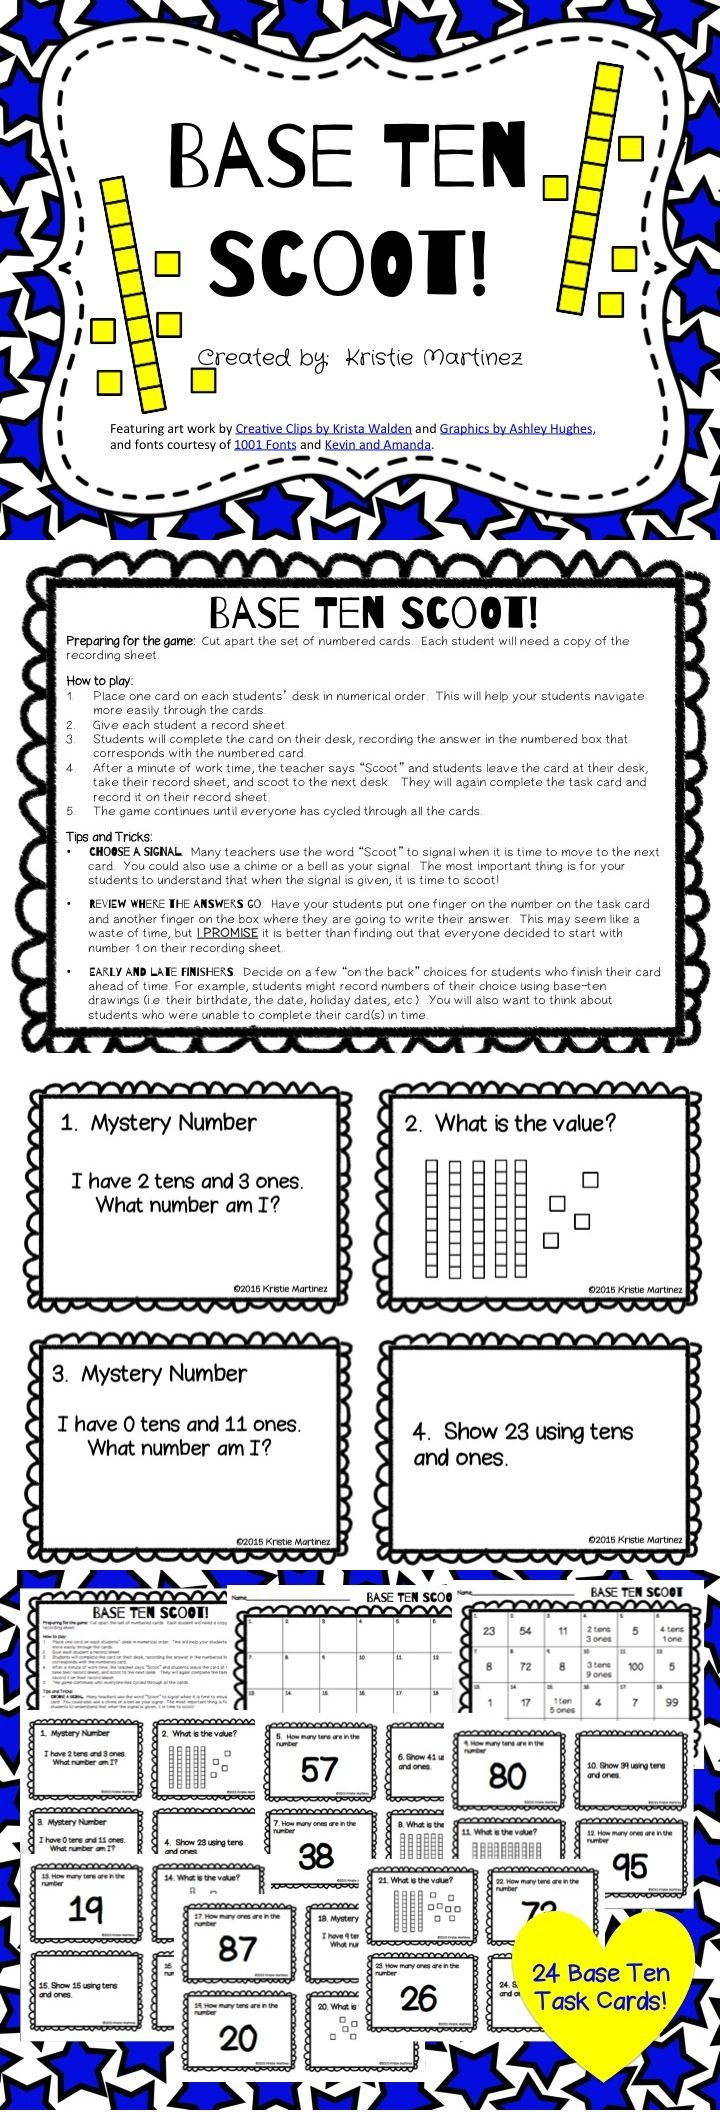 Base Ten Scoot! is a game that will get the entire class up and moving around while reviewing Common Core Numbers and Operations in Base Ten Standards. Base Ten Scoot! provides practice with counting tens and ones, identifying place value within two-digit numbers, and representing two-digit numbers with tens and ones.